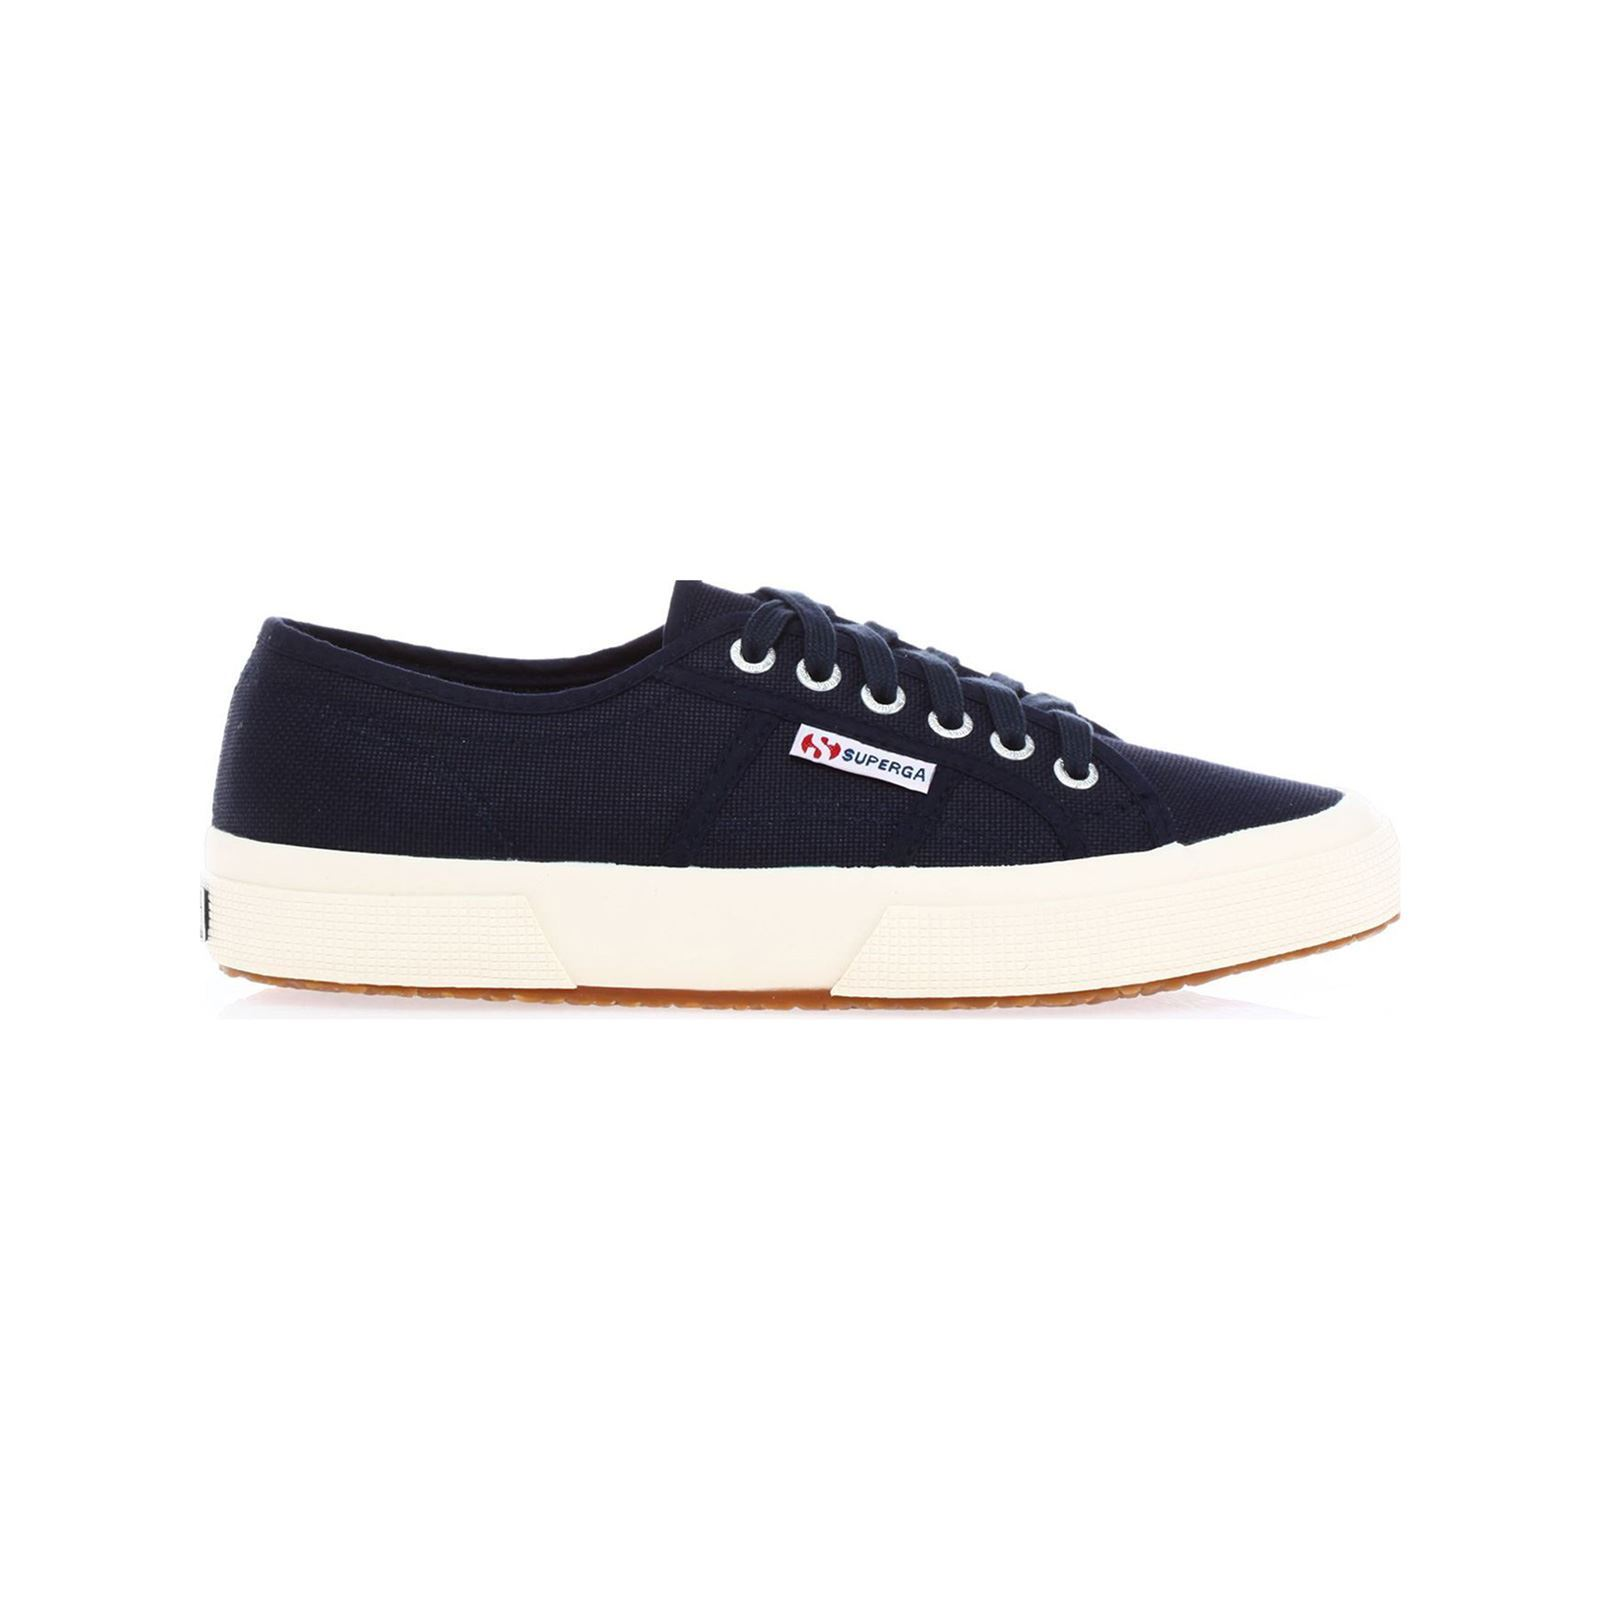 Superga Cotu Classic - Baskets Mode - noires